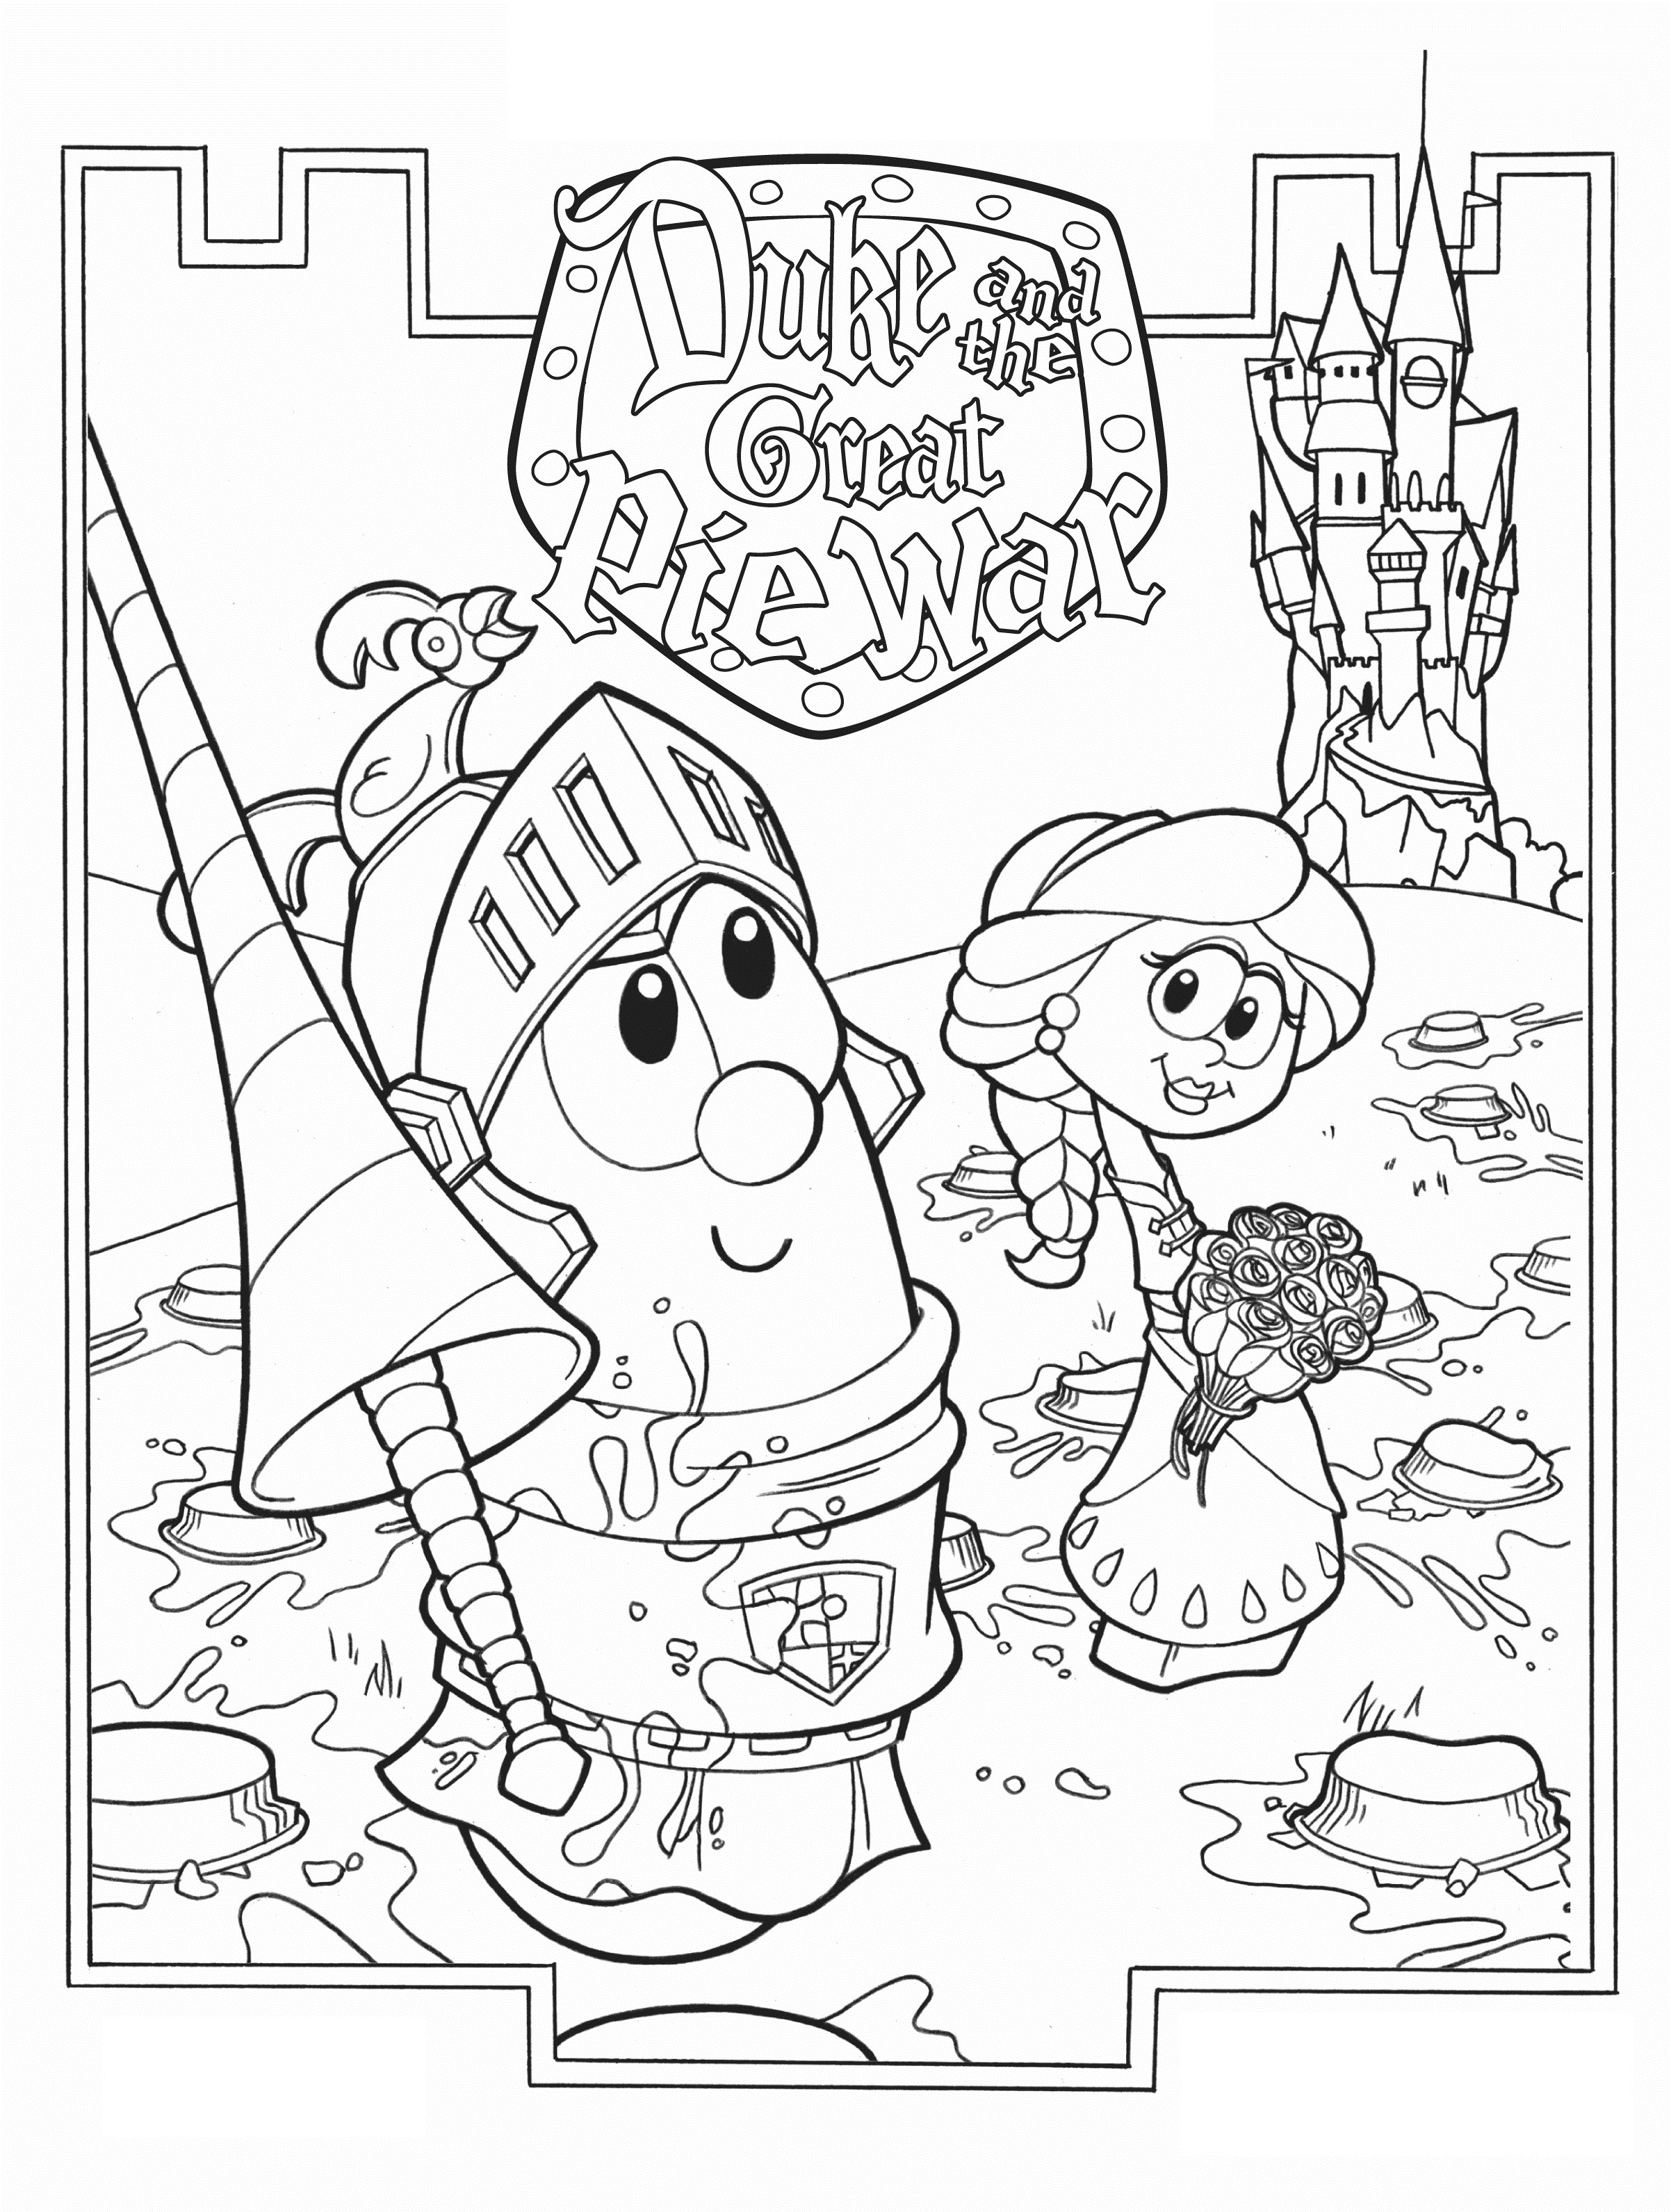 free printable kid coloring pages | Free Printable Veggie Tales Coloring Pages For Kids